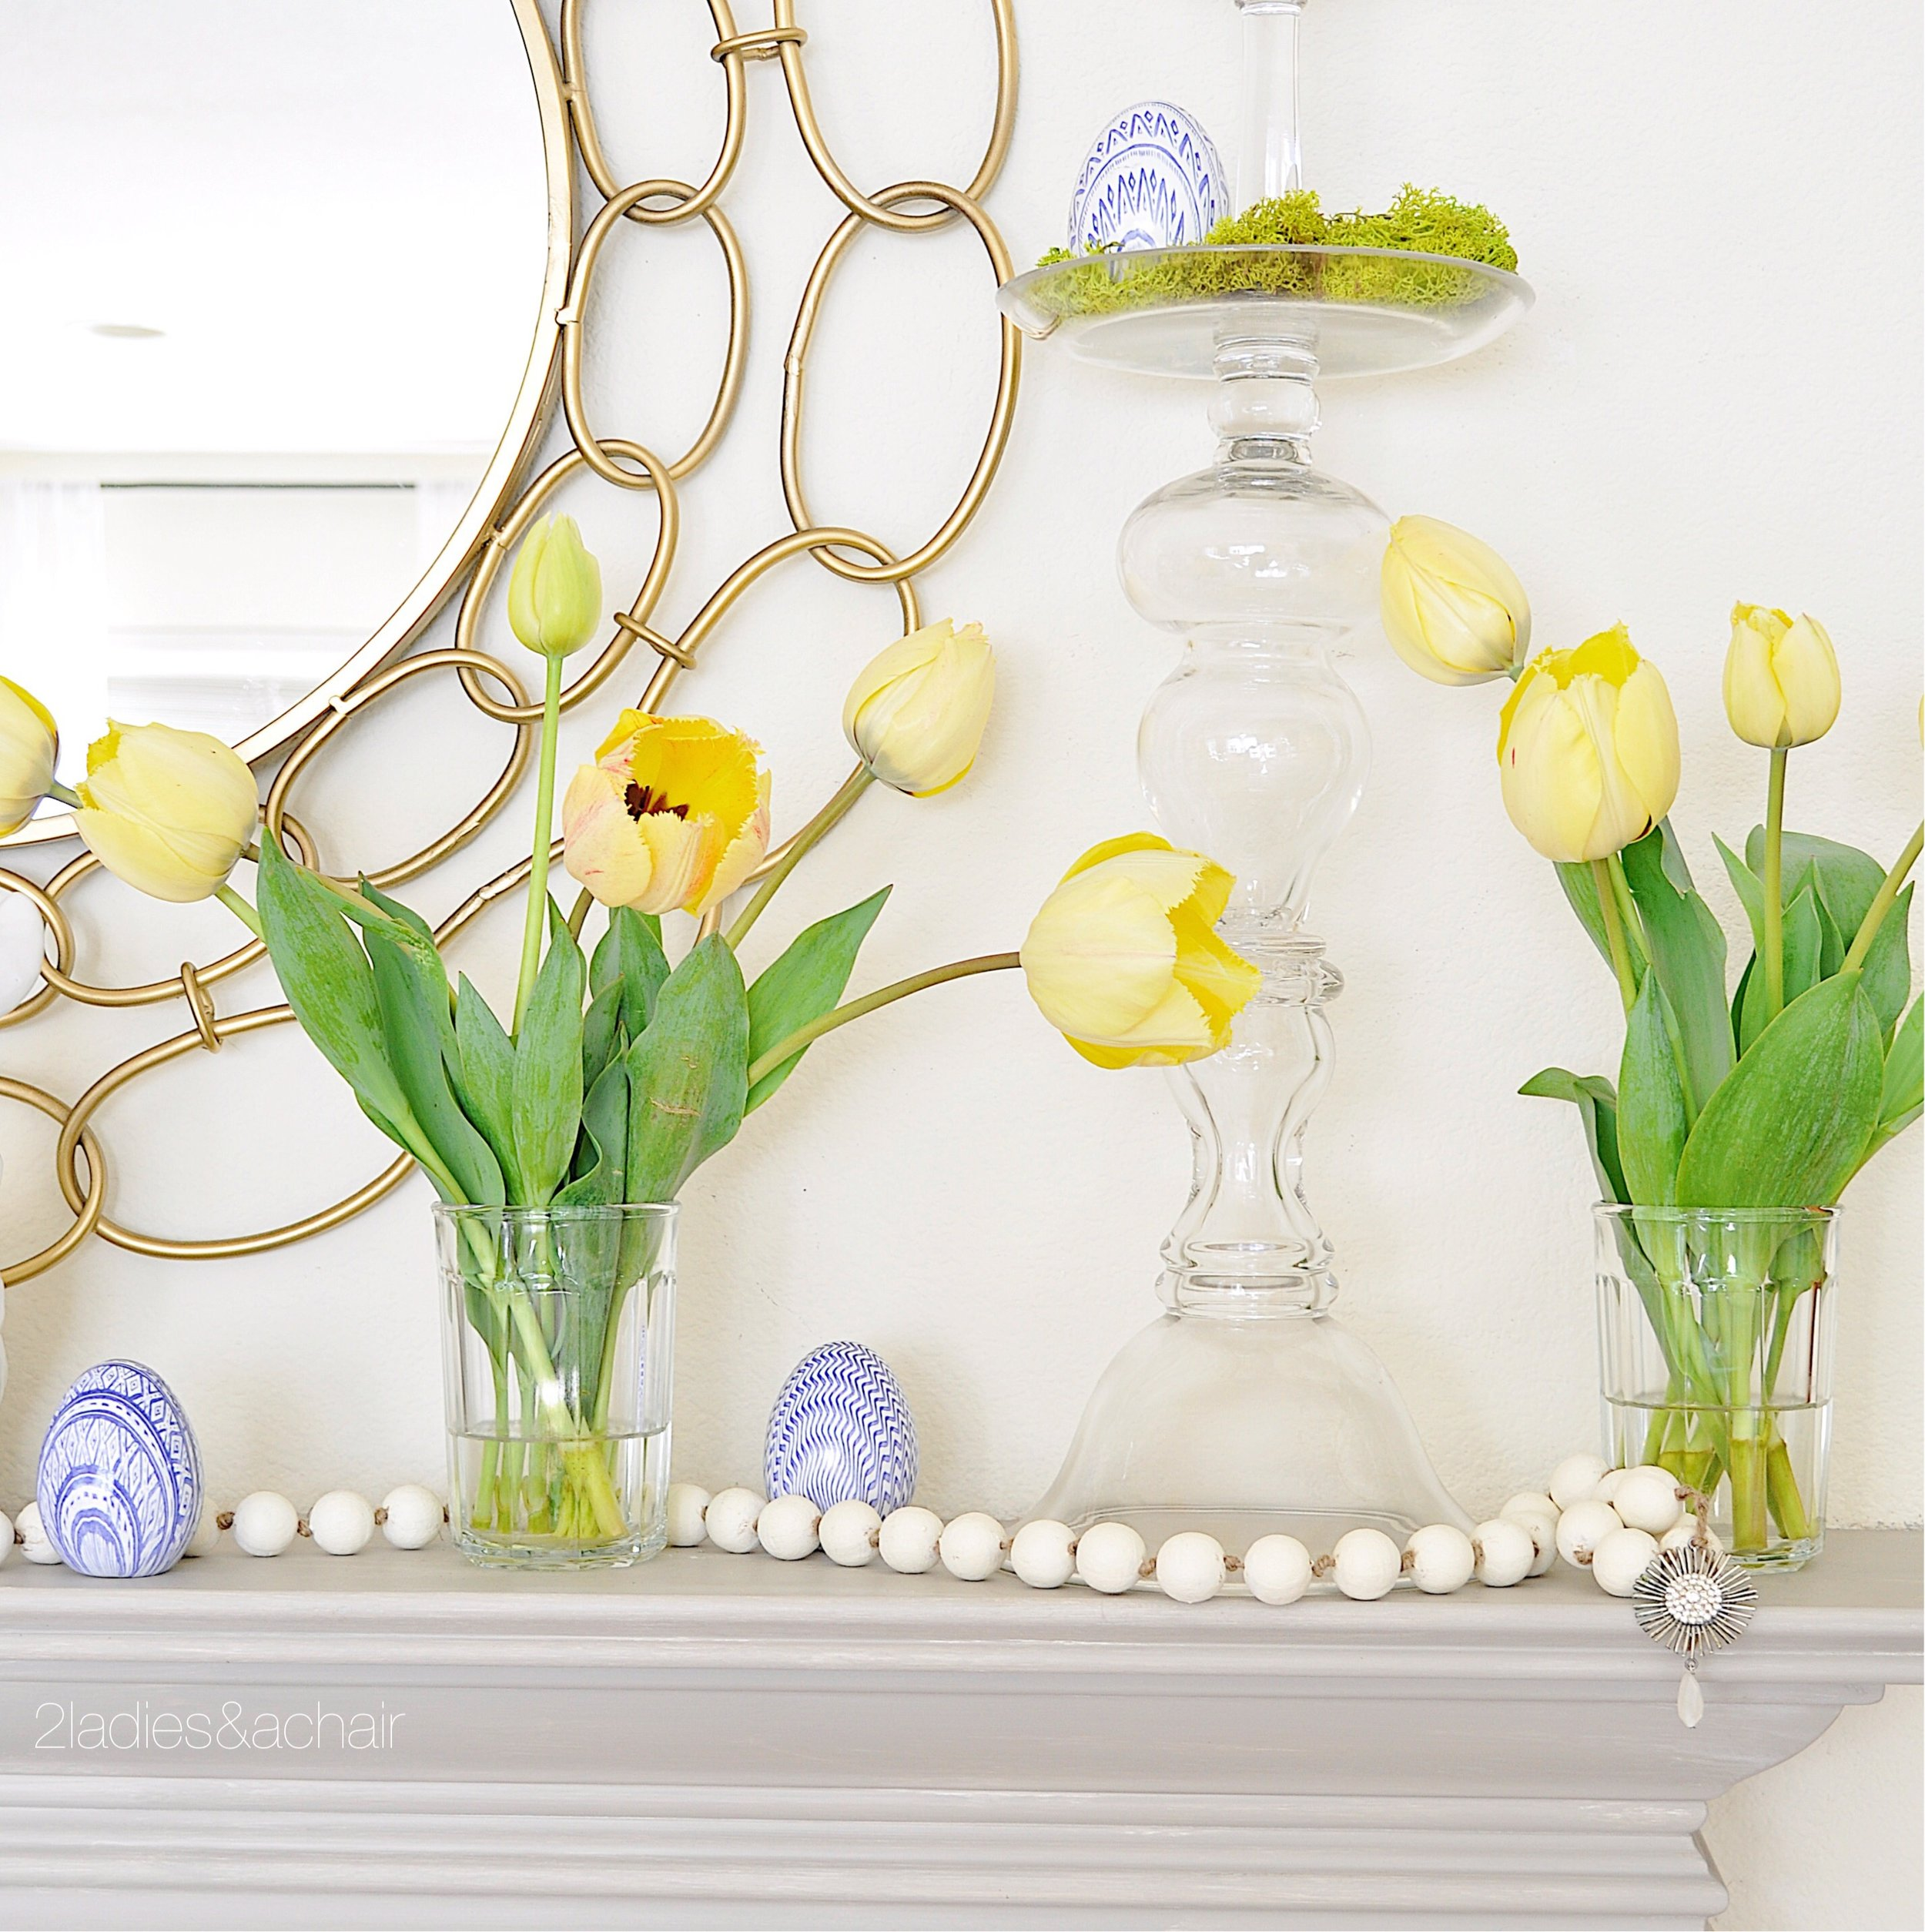 easter mantel decor IMG_1910.JPG